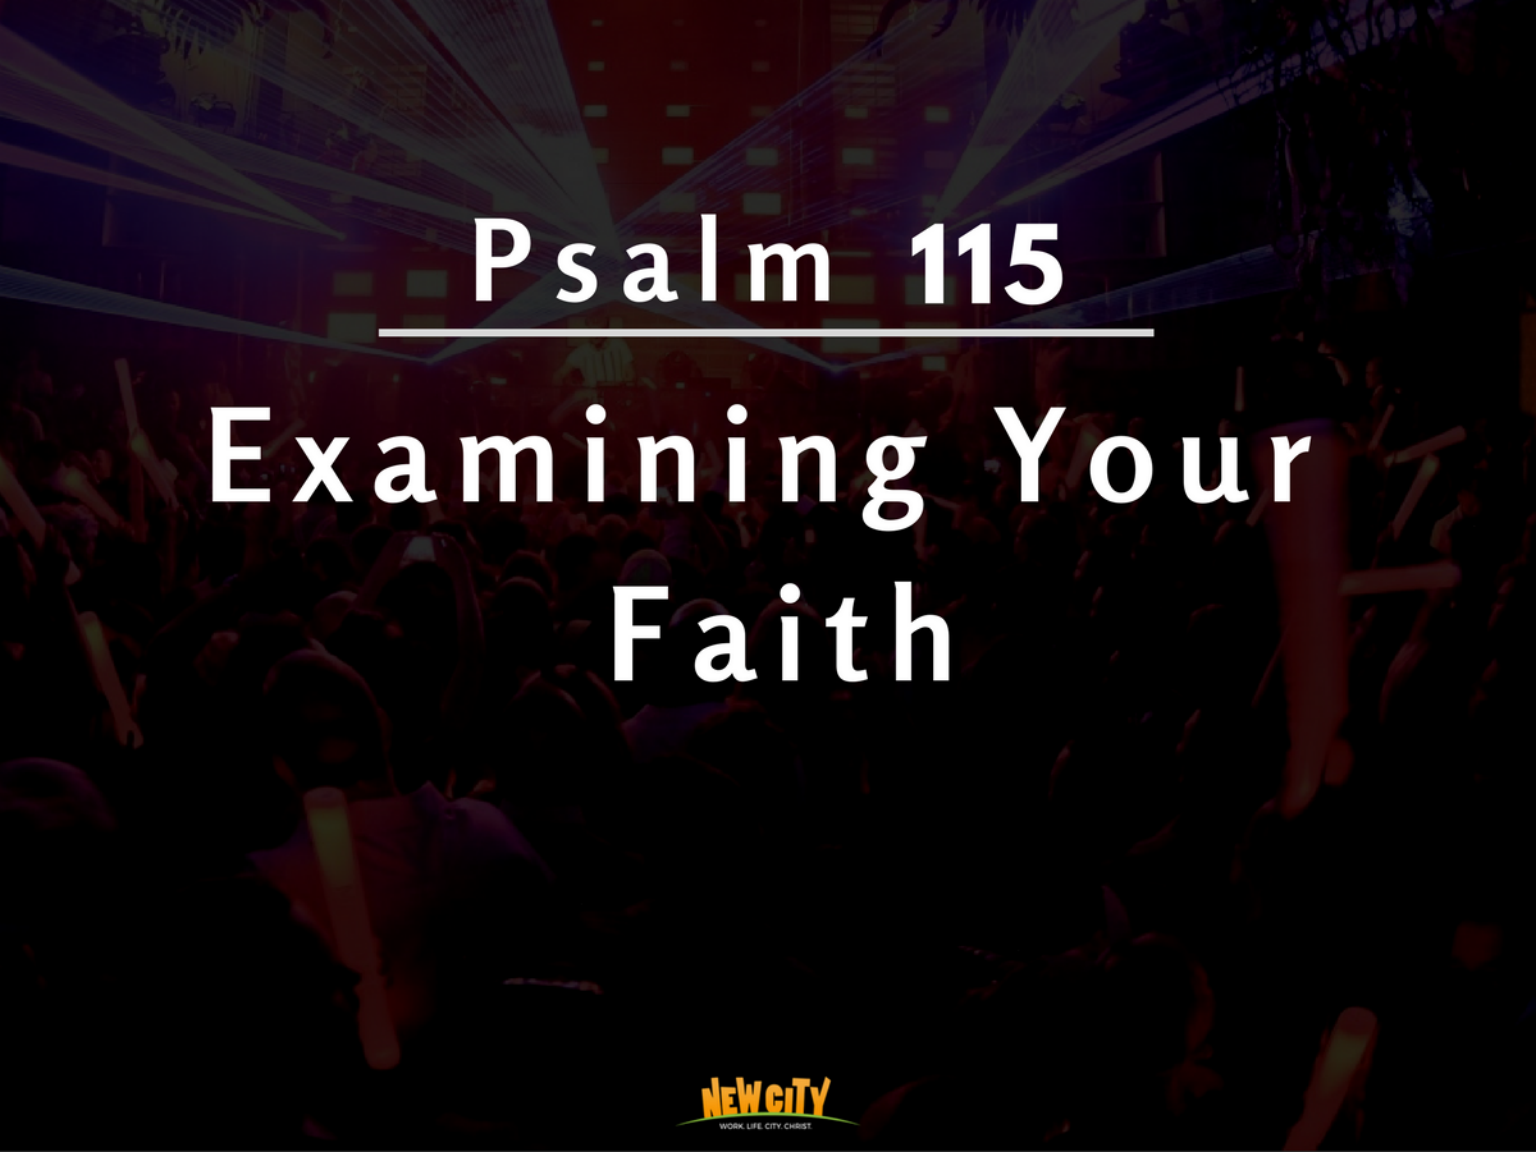 Examining Your Faith Image